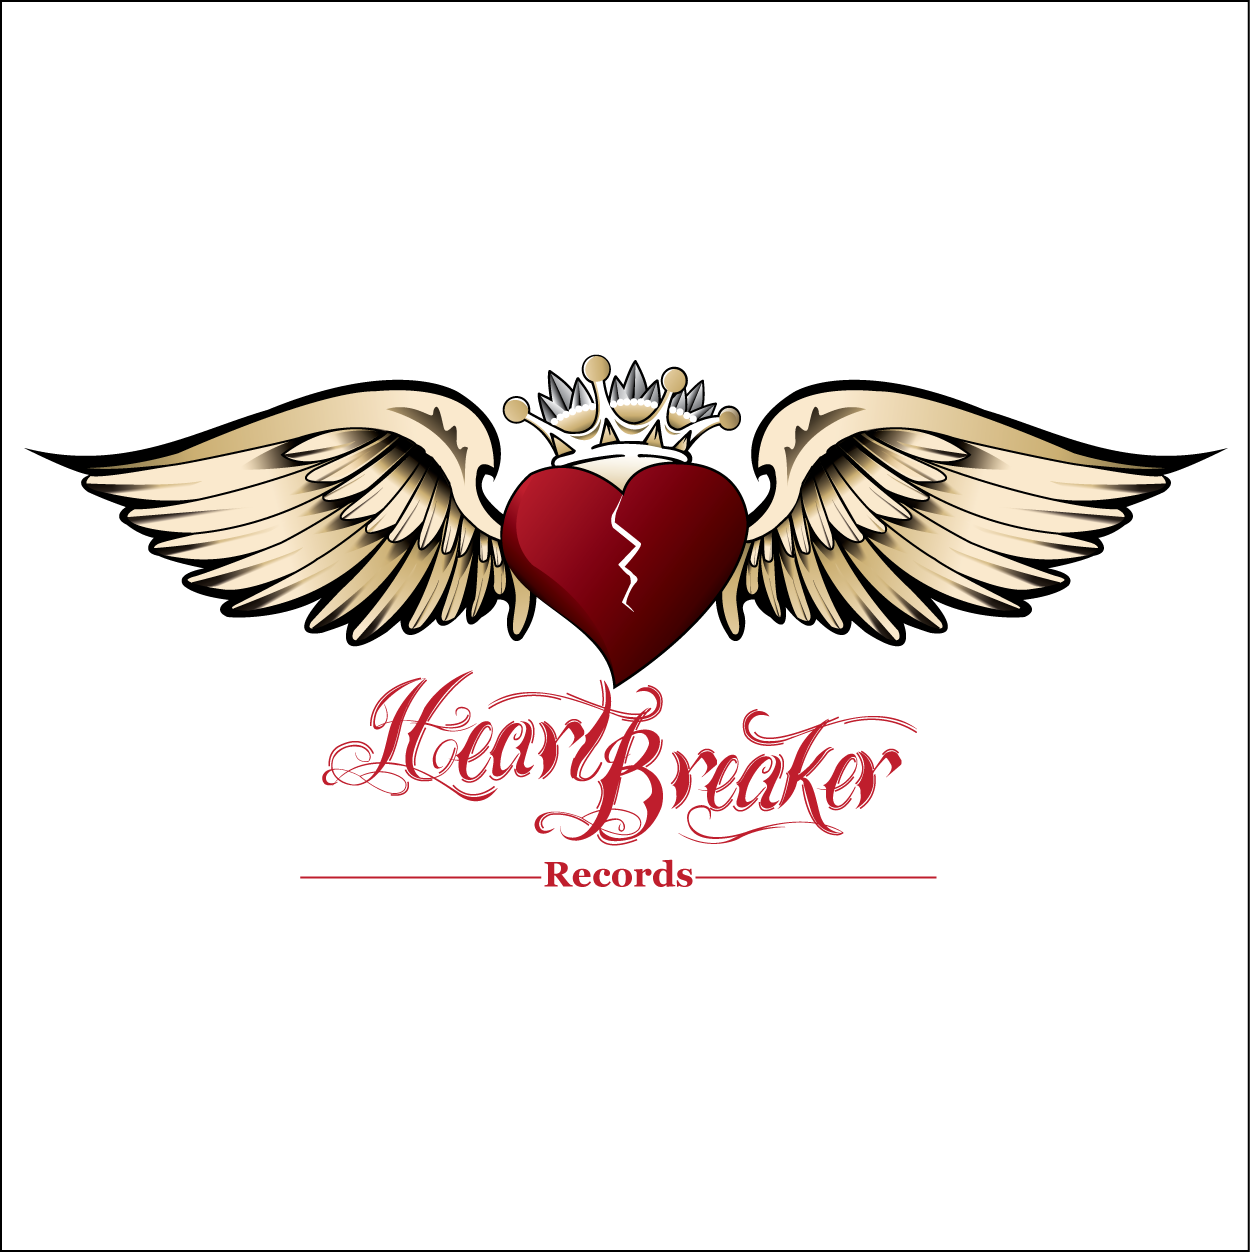 Logo Design by trabas - Entry No. 58 in the Logo Design Contest Heartbreaker Records.